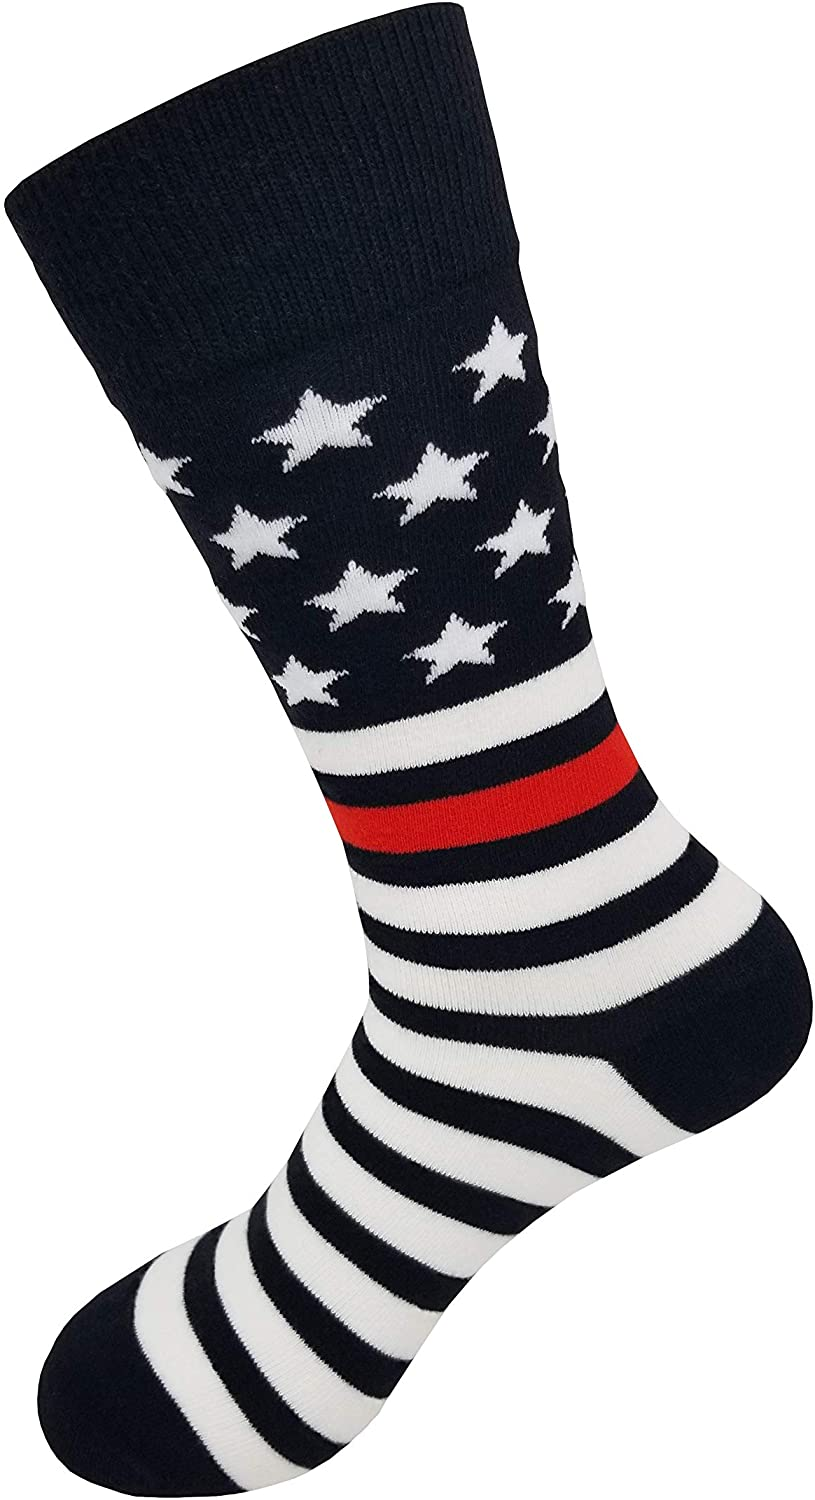 American Flag Thin Red Line Socks, Support Firefighter First Responders, USA Patriotic Crew Socks